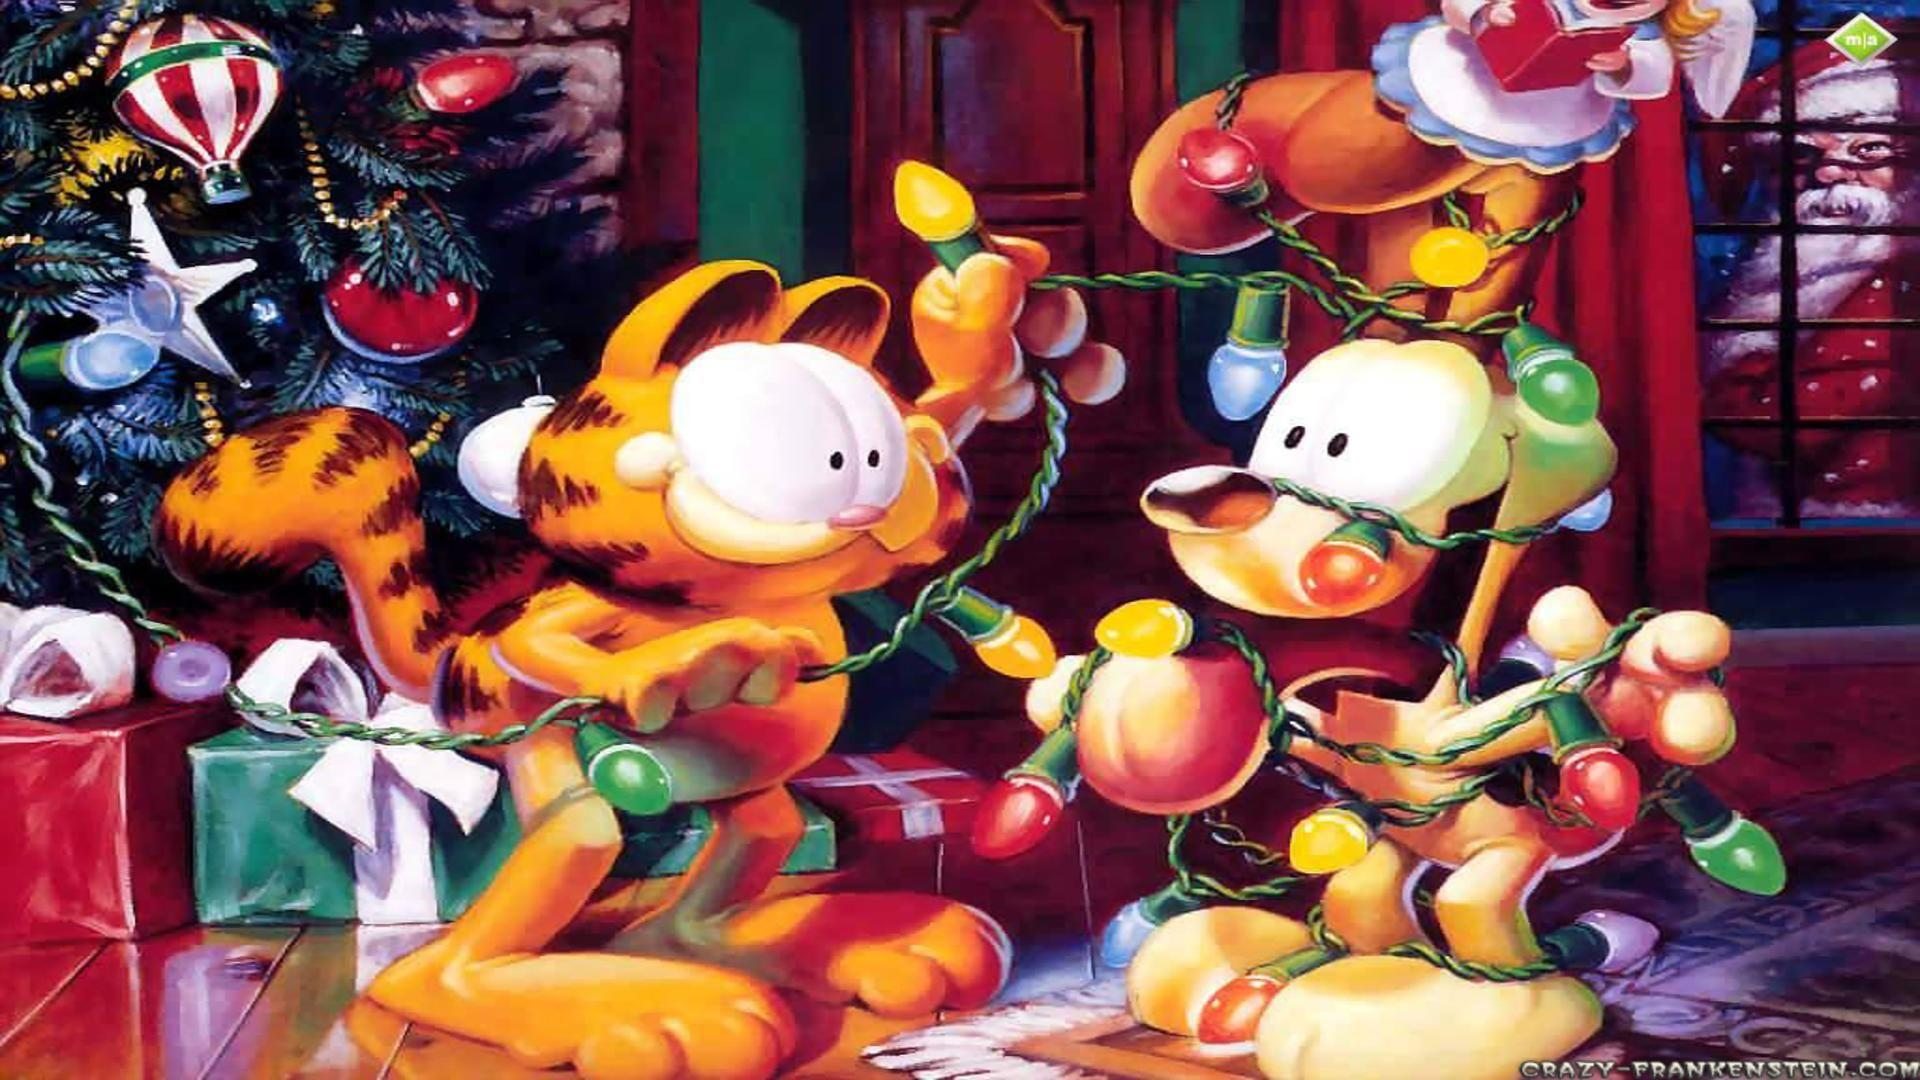 garfield desktop wallpaper odie christmas 1920x1080 1920x1080